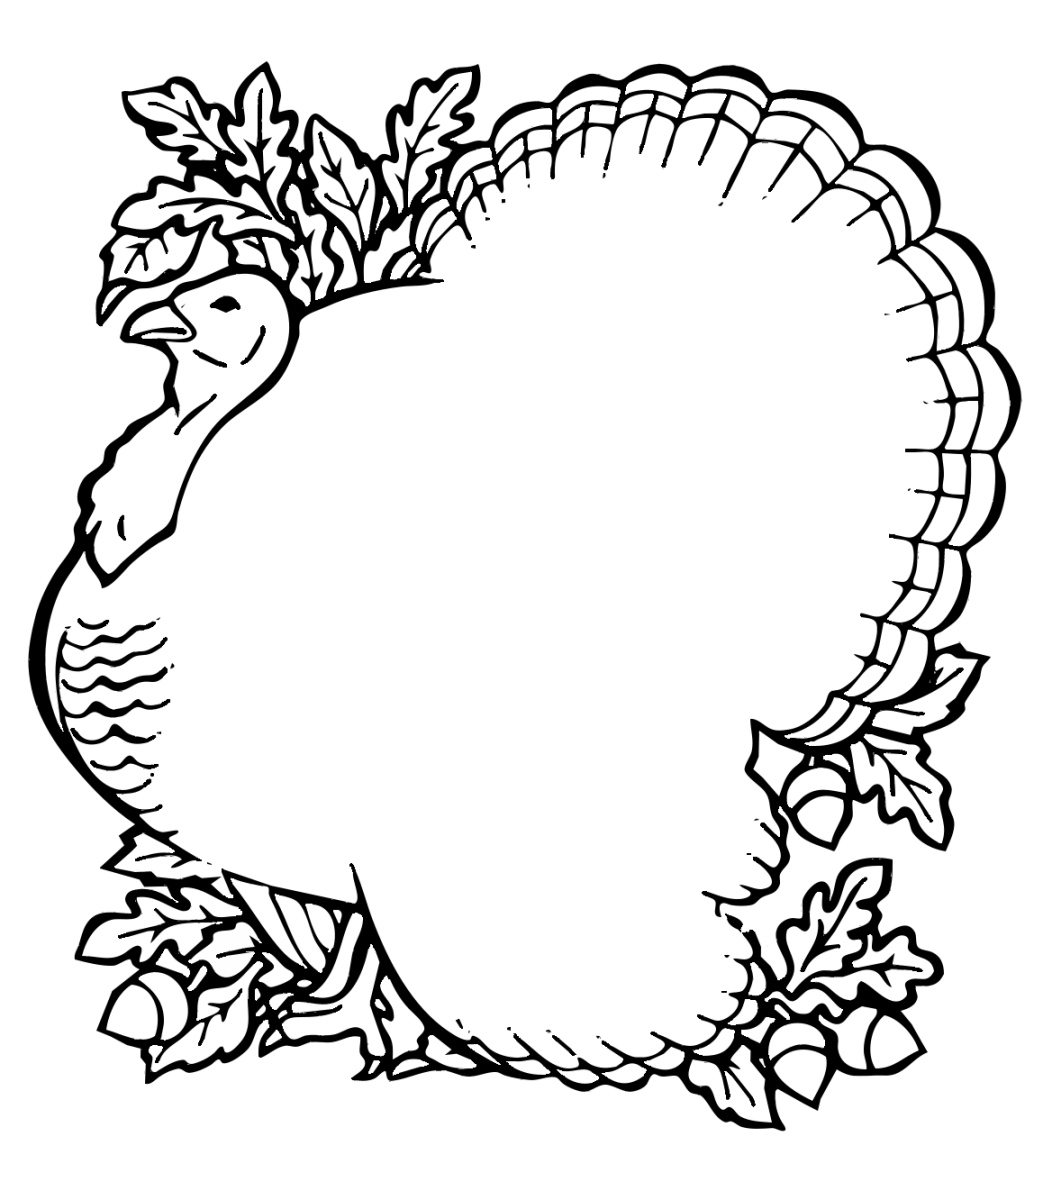 free graphic art coloring pages - photo#15